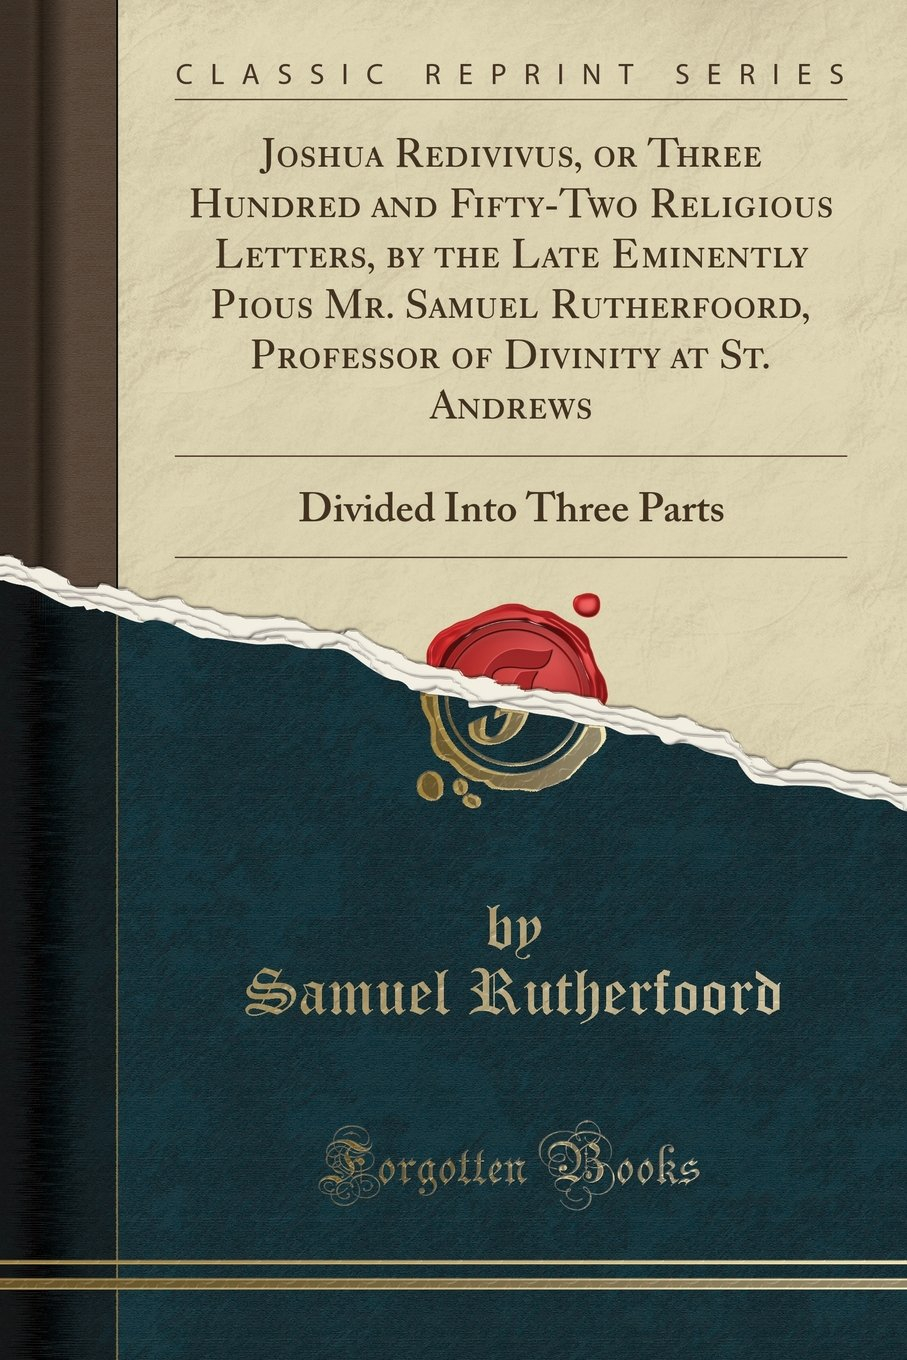 Read Online Joshua Redivivus, or Three Hundred and Fifty-Two Religious Letters, by the Late Eminently Pious Mr. Samuel Rutherfoord, Professor of Divinity at St. Andrews: Divided Into Three Parts (Classic Reprint) PDF